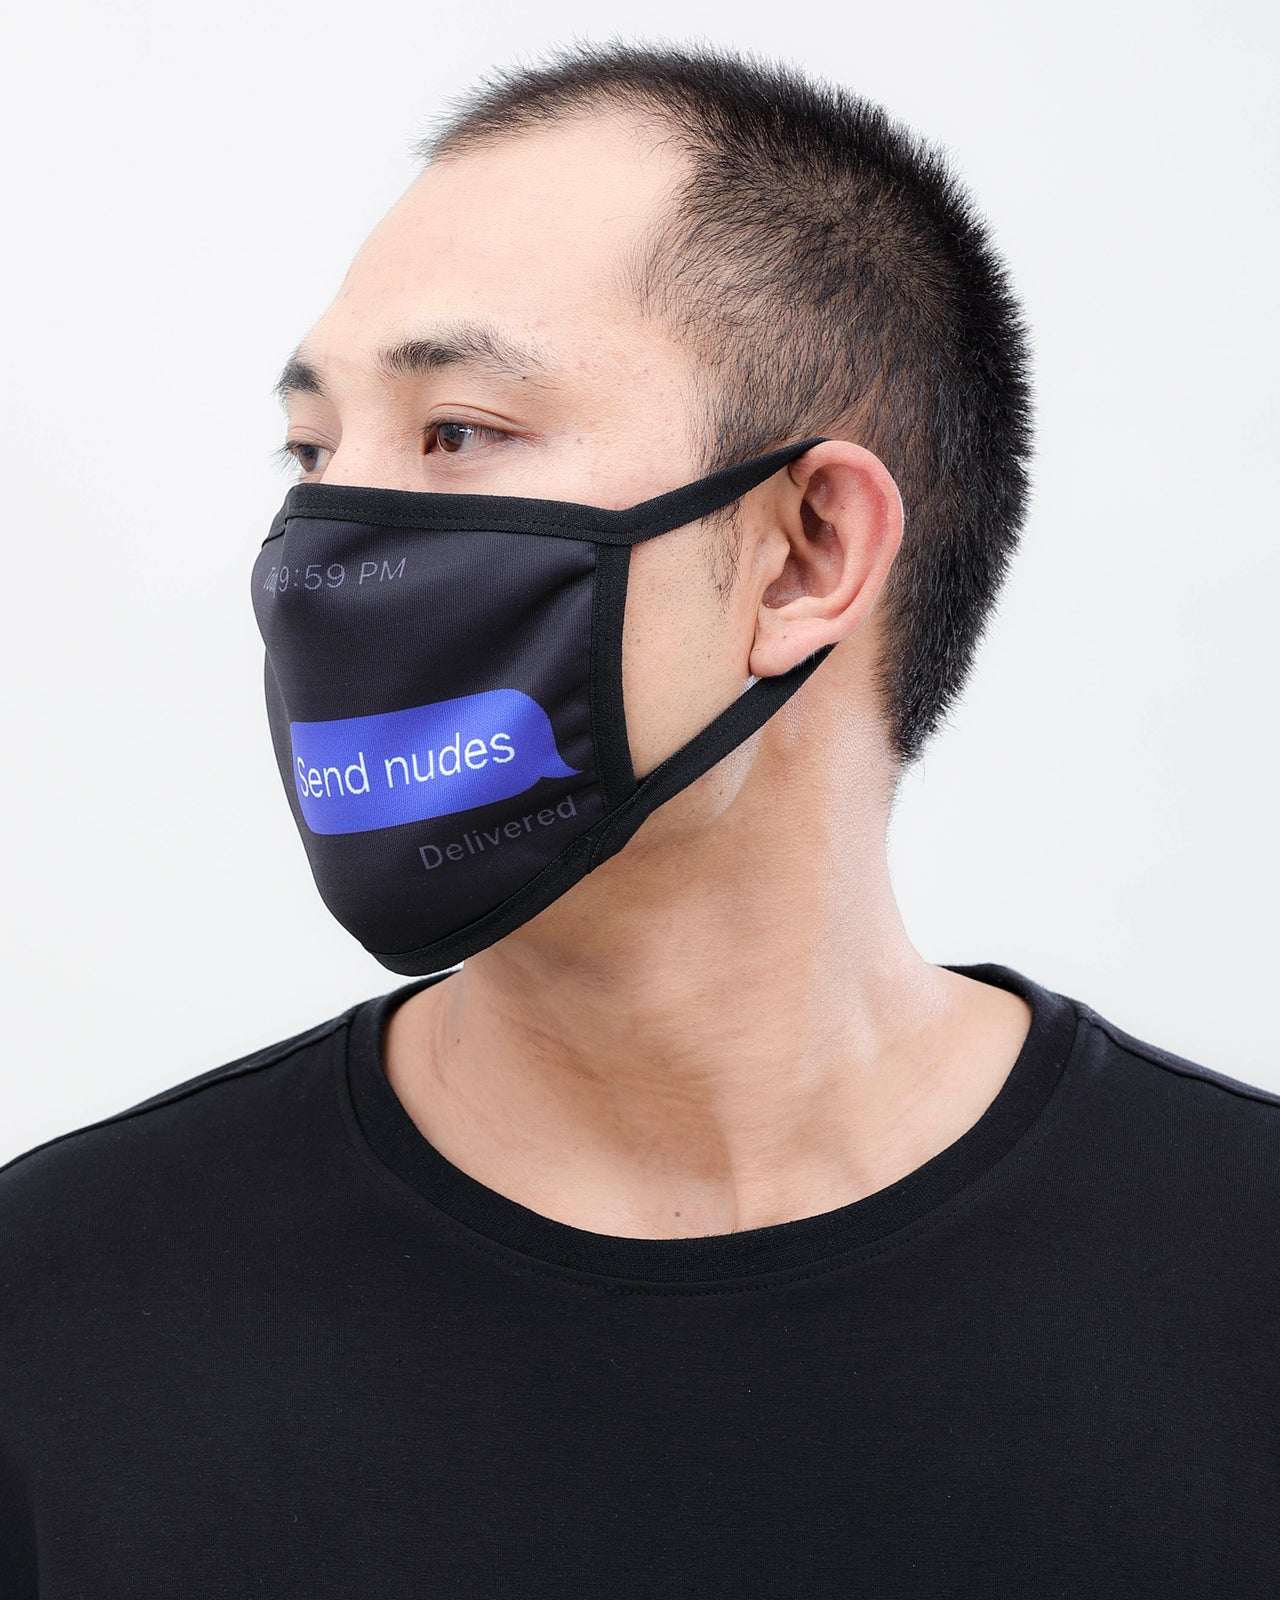 Send Nudes Face Mask - Color: Black | Black